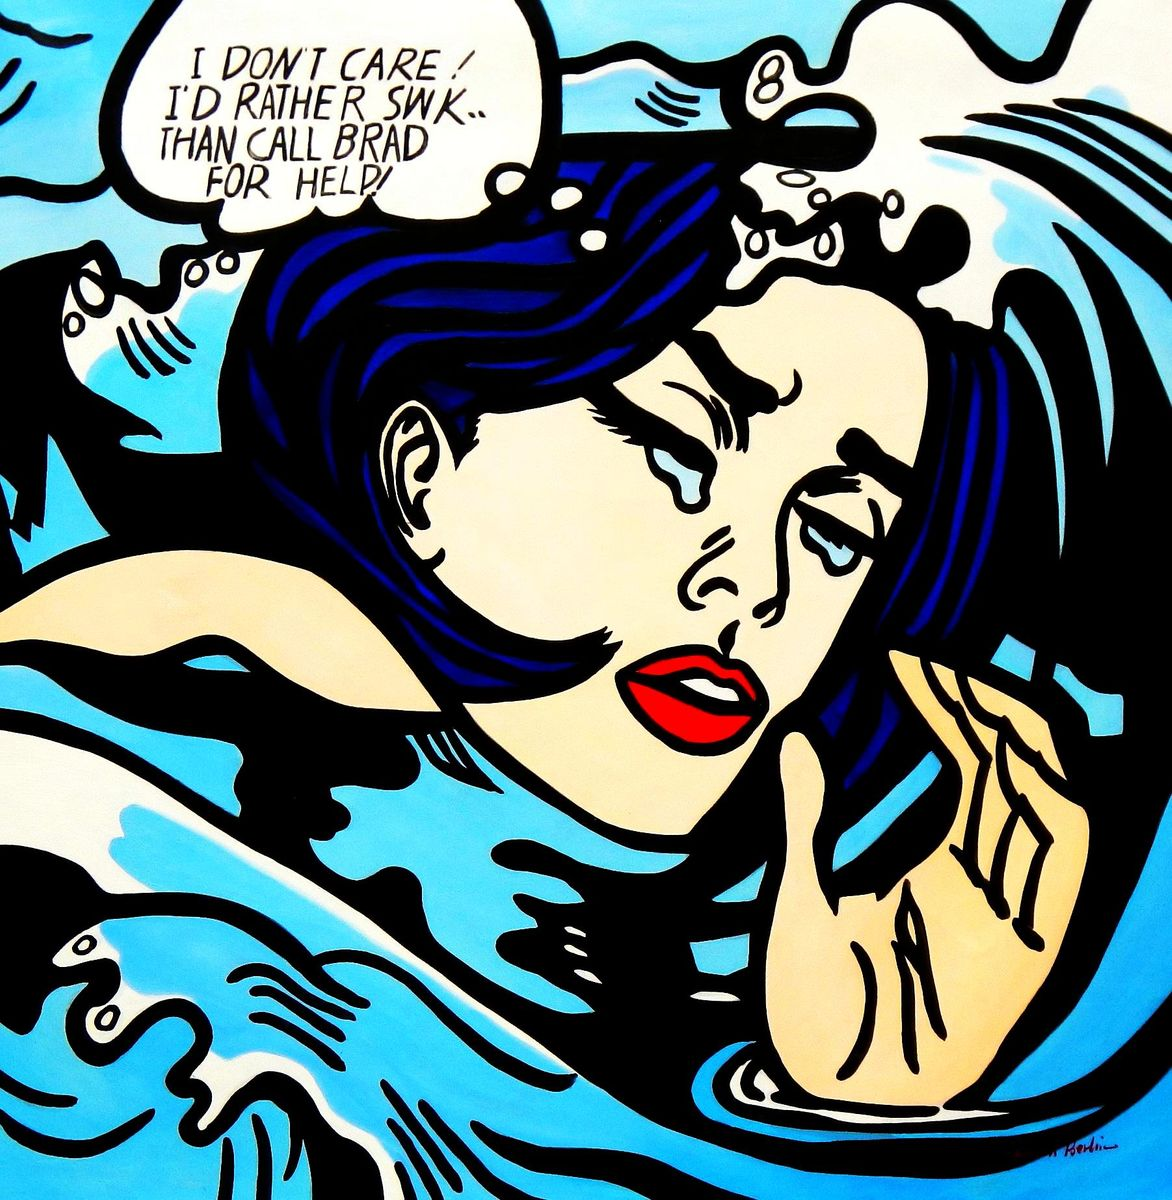 Homage to Roy Lichtenstein -  Do not care Pop Art m94481 120x120cm exquisites Ölbild handgemalt